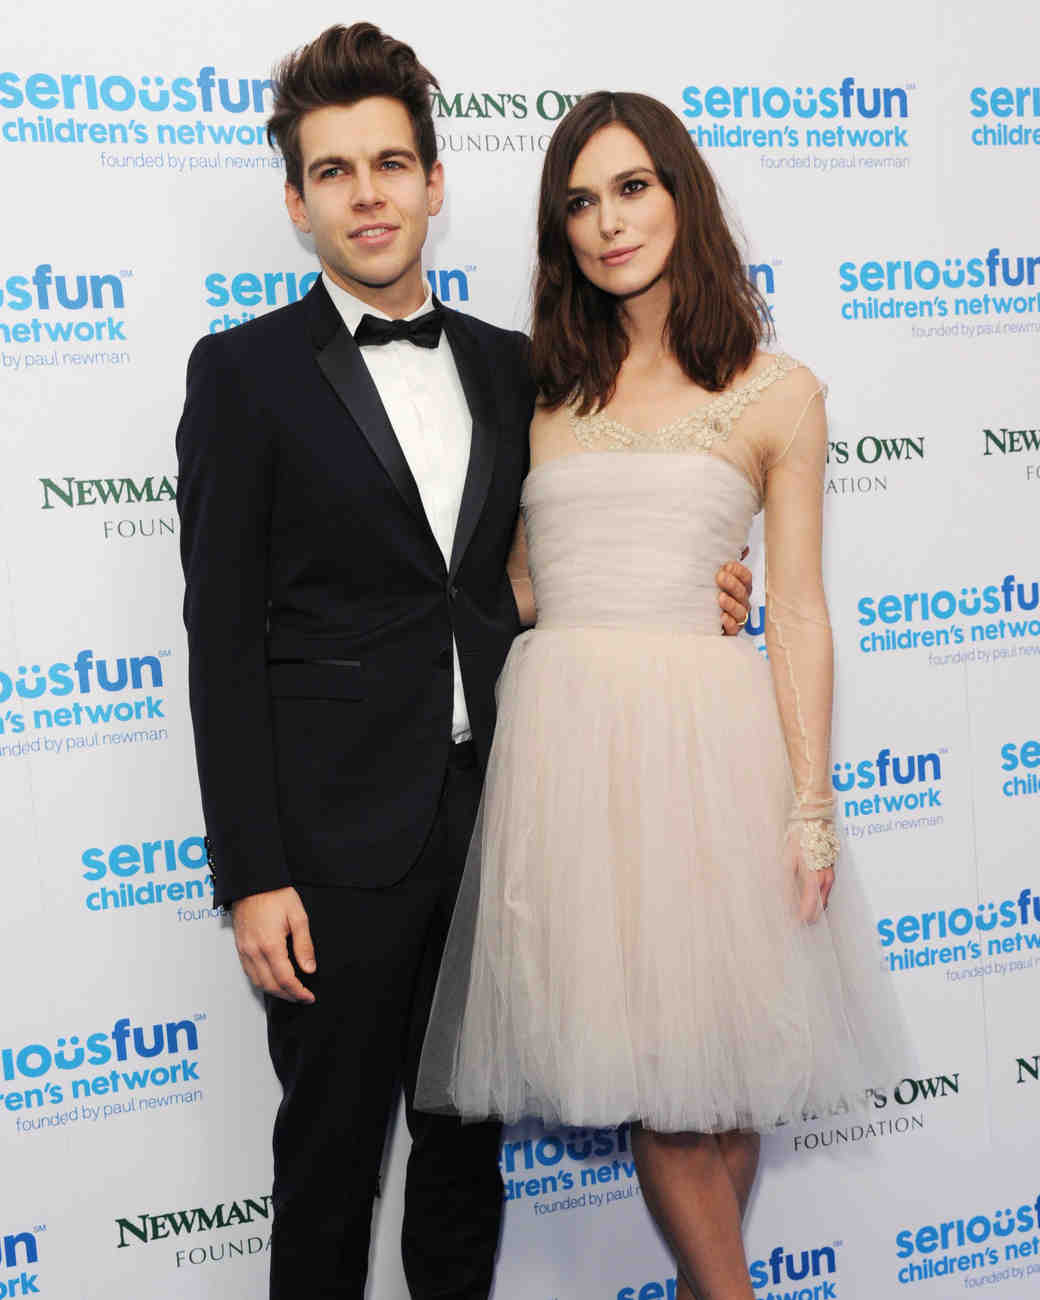 celebrity-pink-wedding-dresses-keira-knightley-gettyimages-453333929-0815.jpg